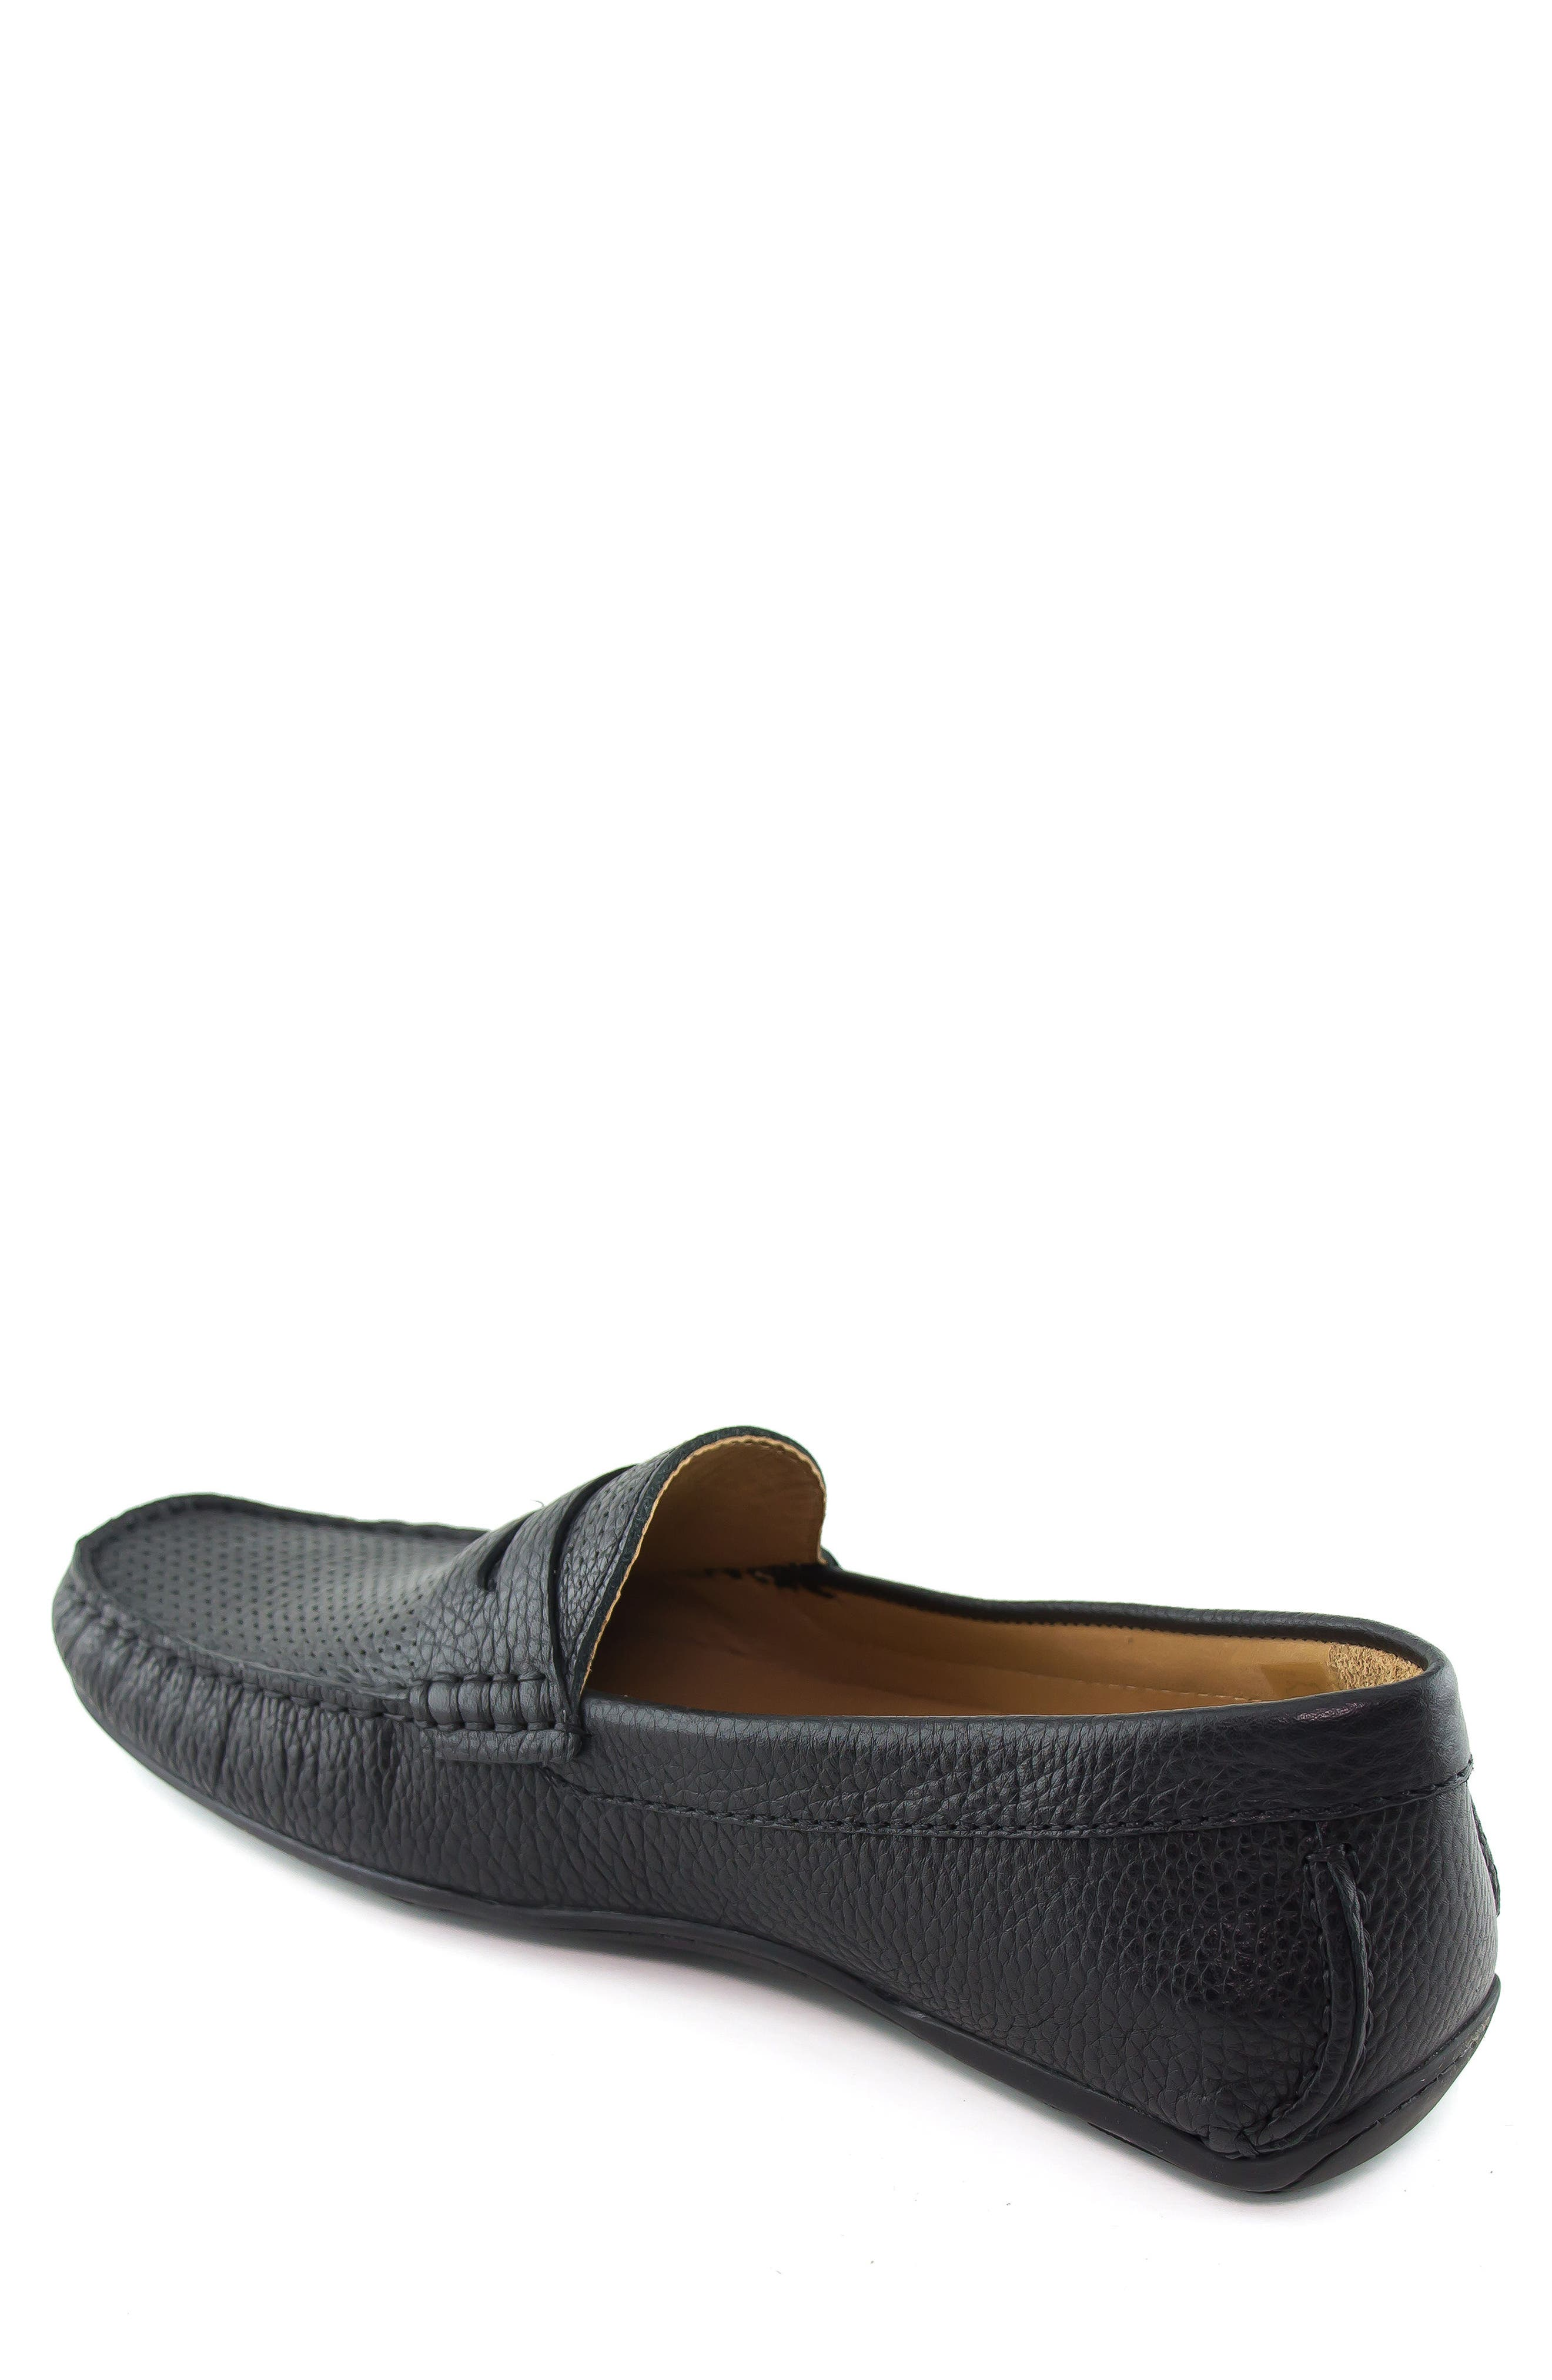 MARC JOSEPH NEW YORK, Union Street Driving Shoe, Alternate thumbnail 2, color, BLACK